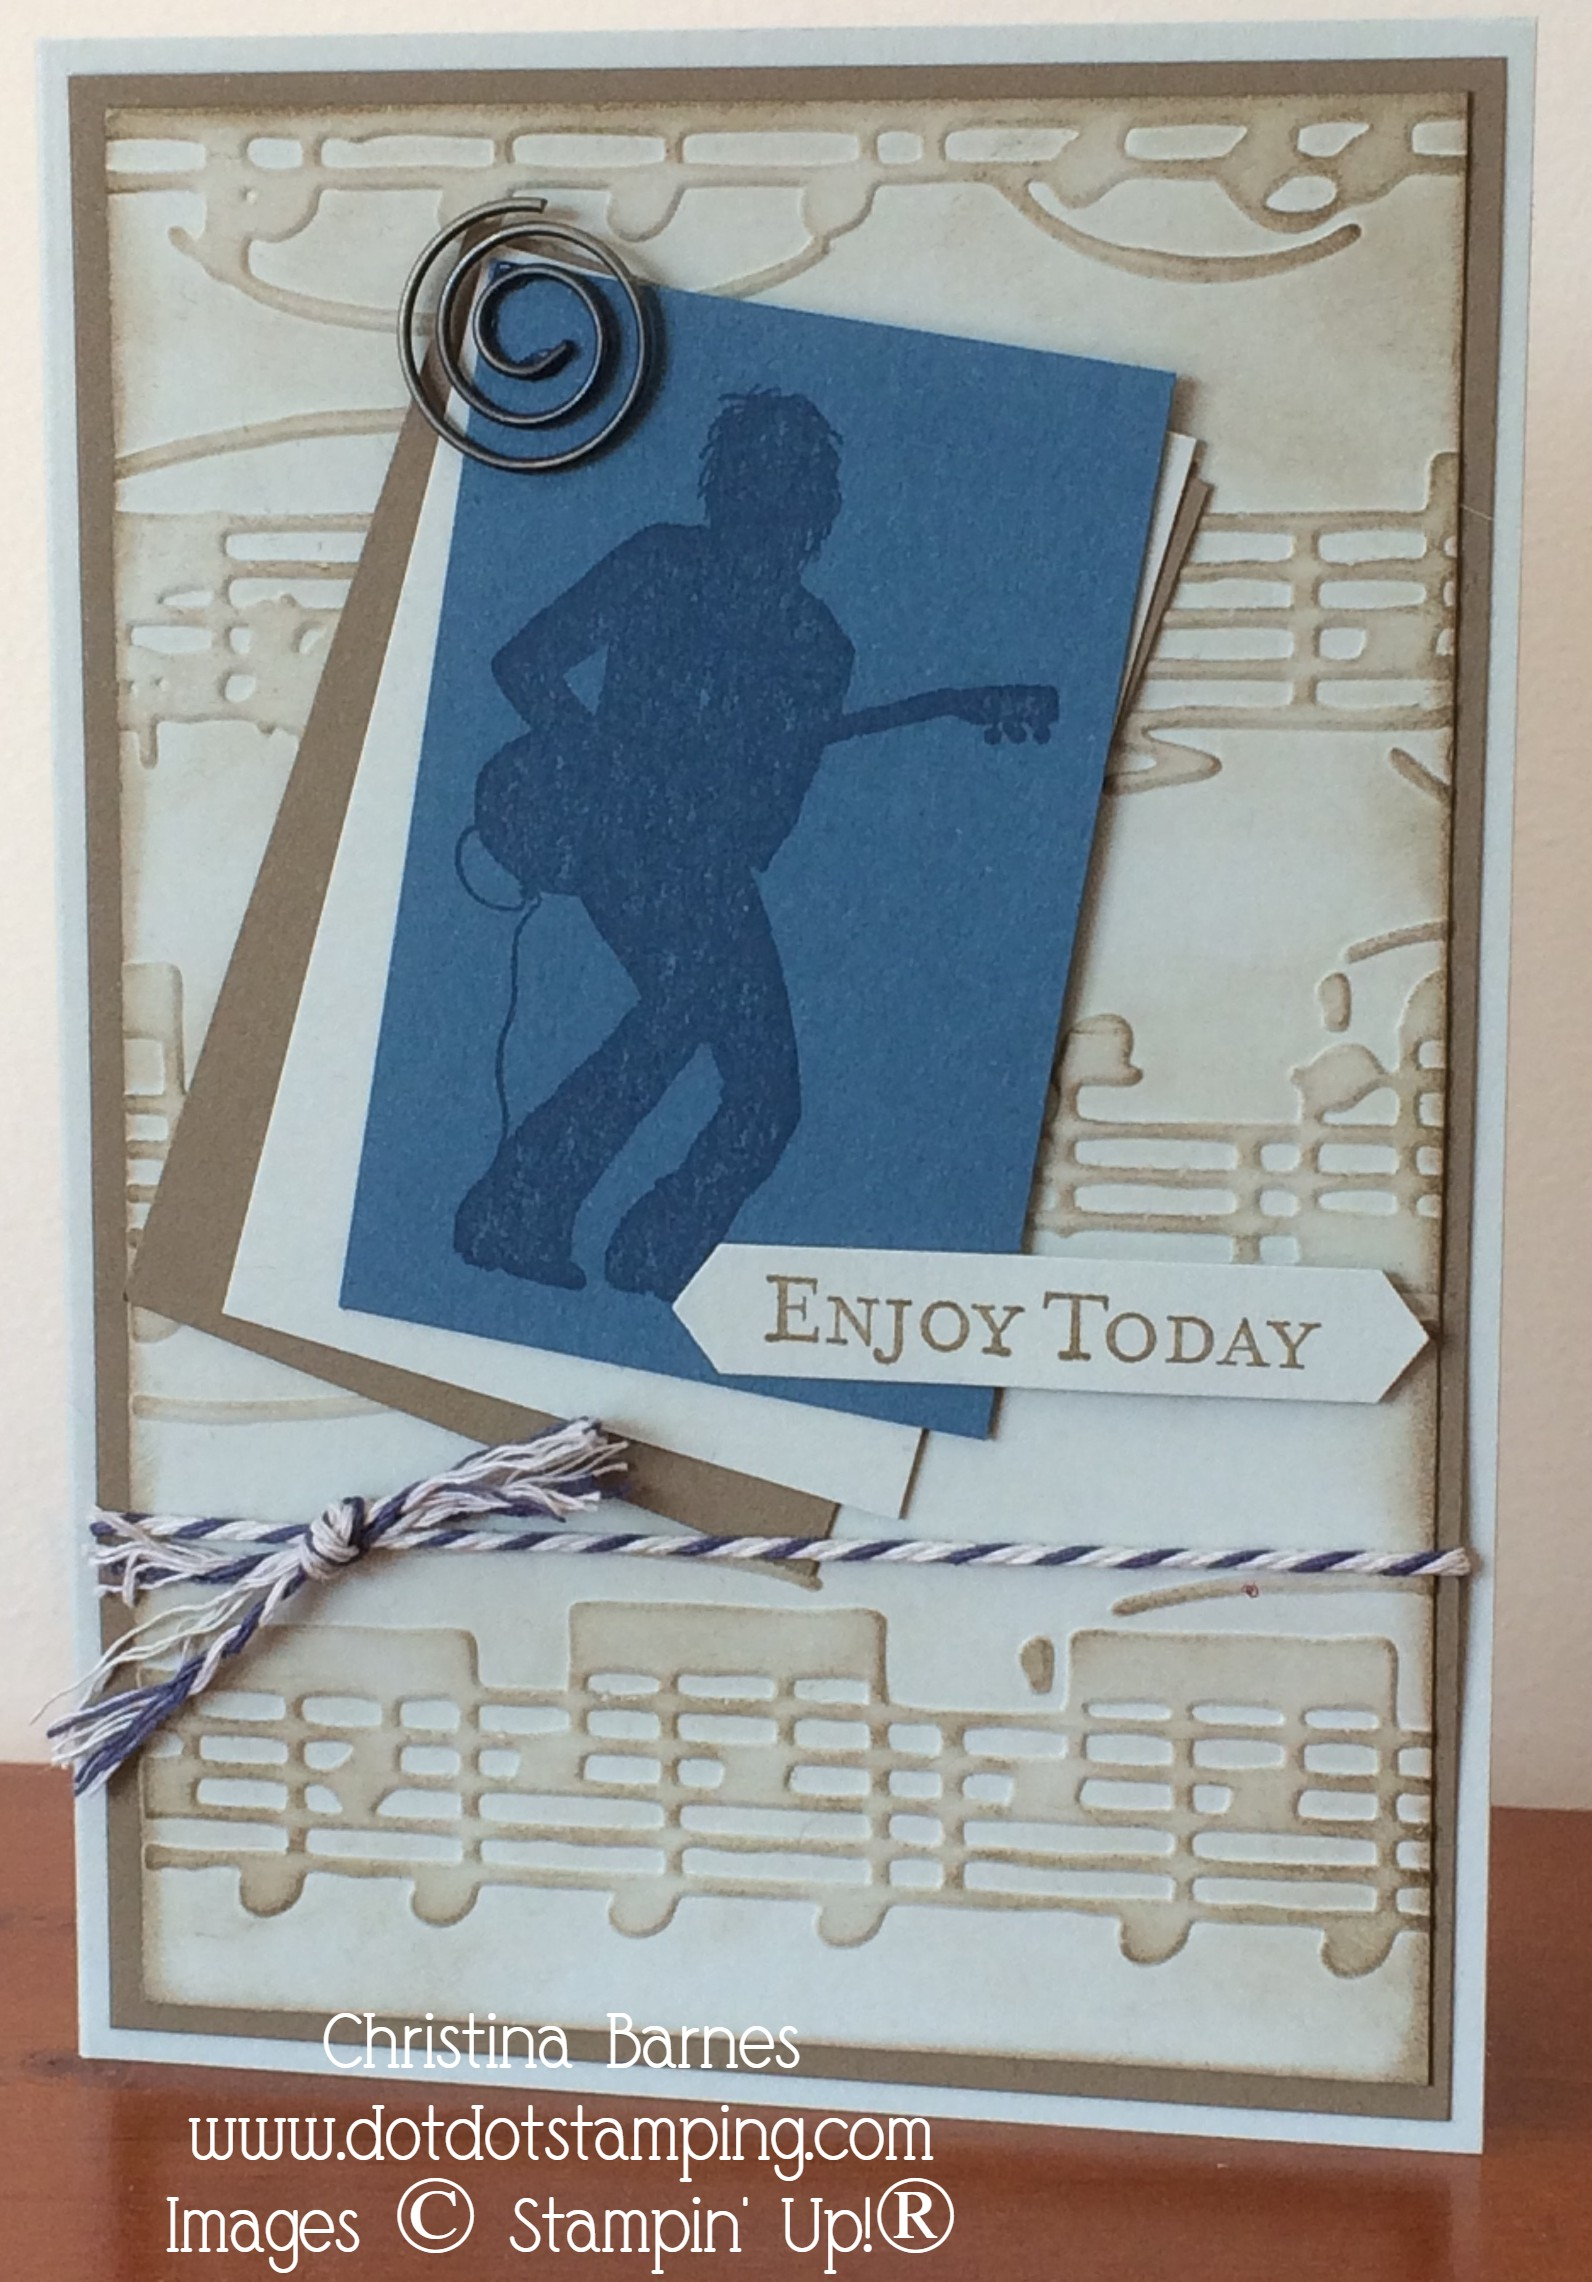 Beetles Inspired Masculine Card Christina Barnes Dot Dot Stamping Music